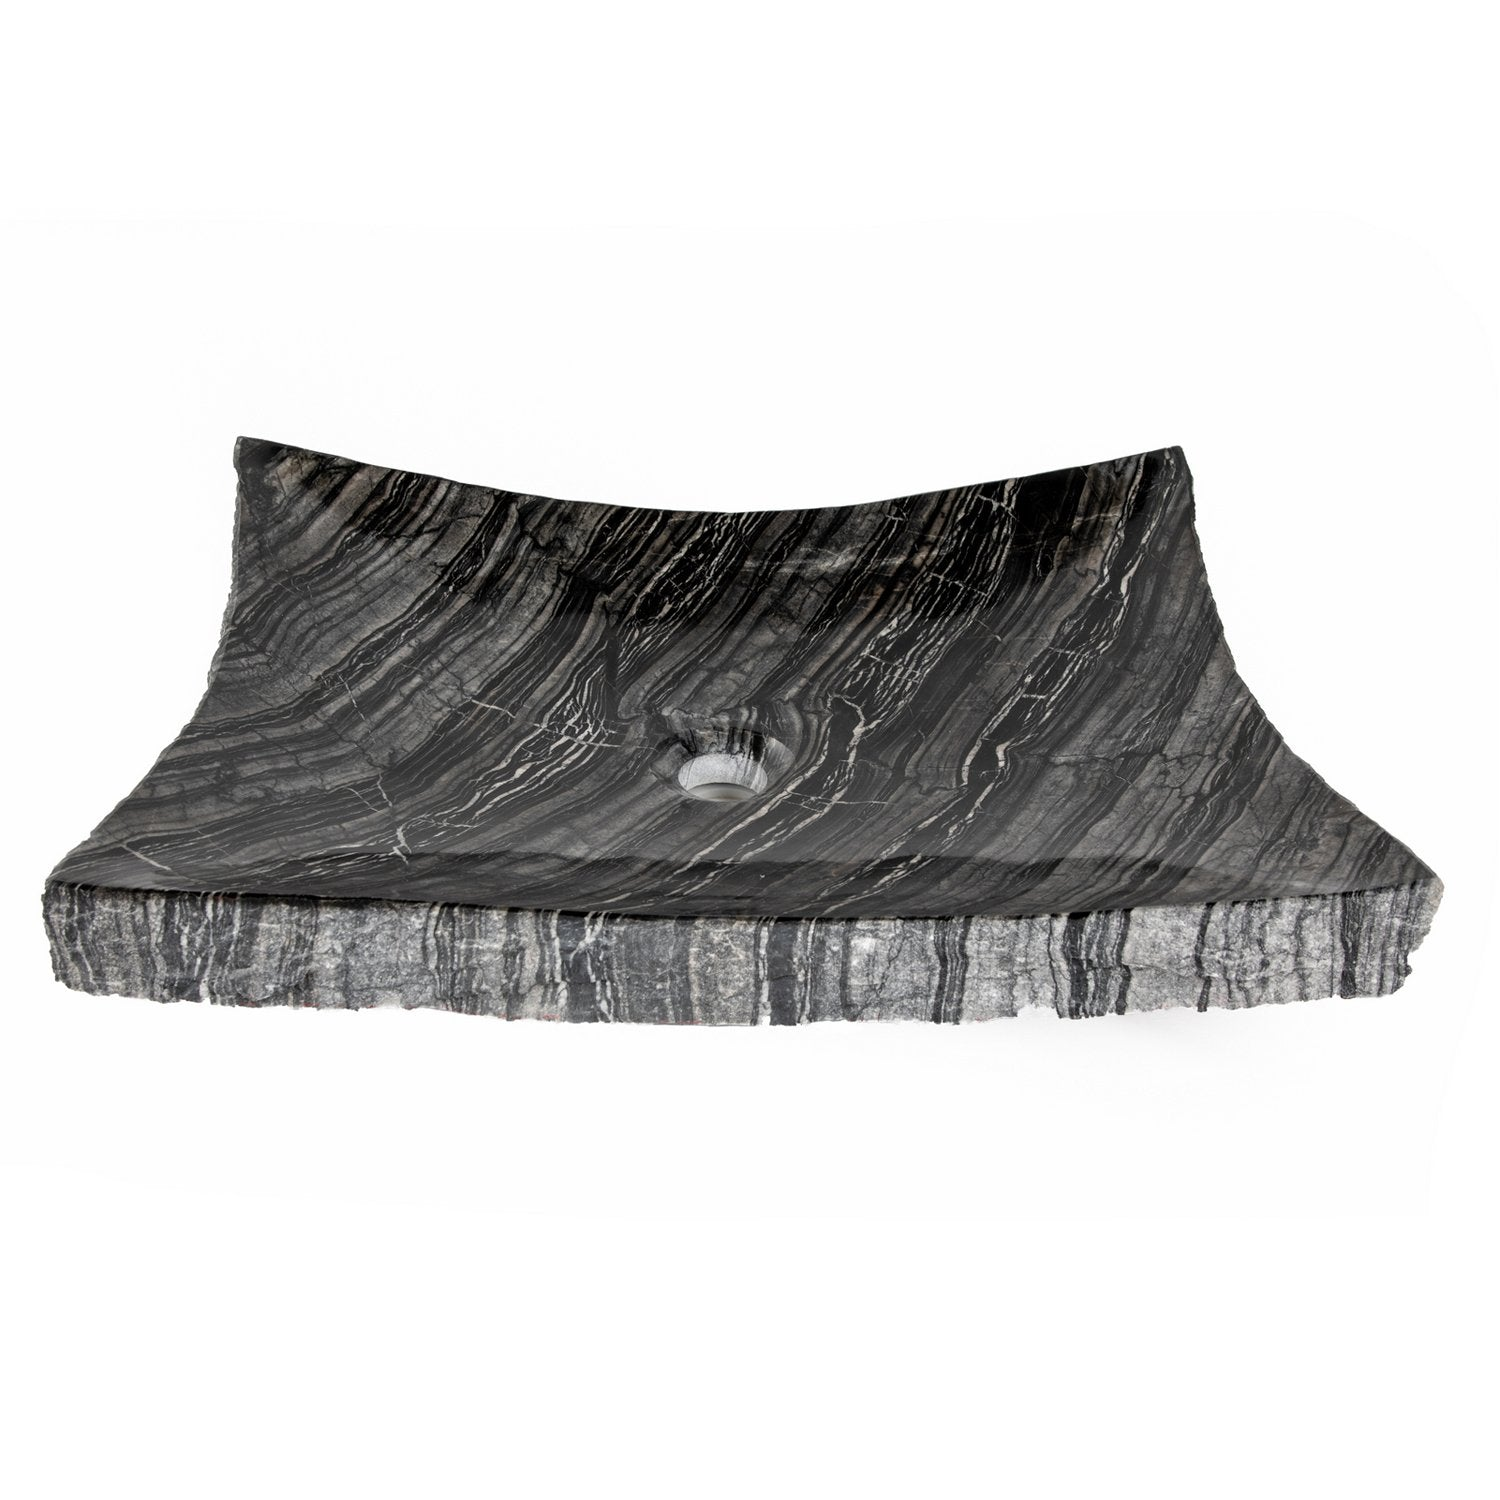 Eden Bath Wooden Black Marble Large Zen Sink